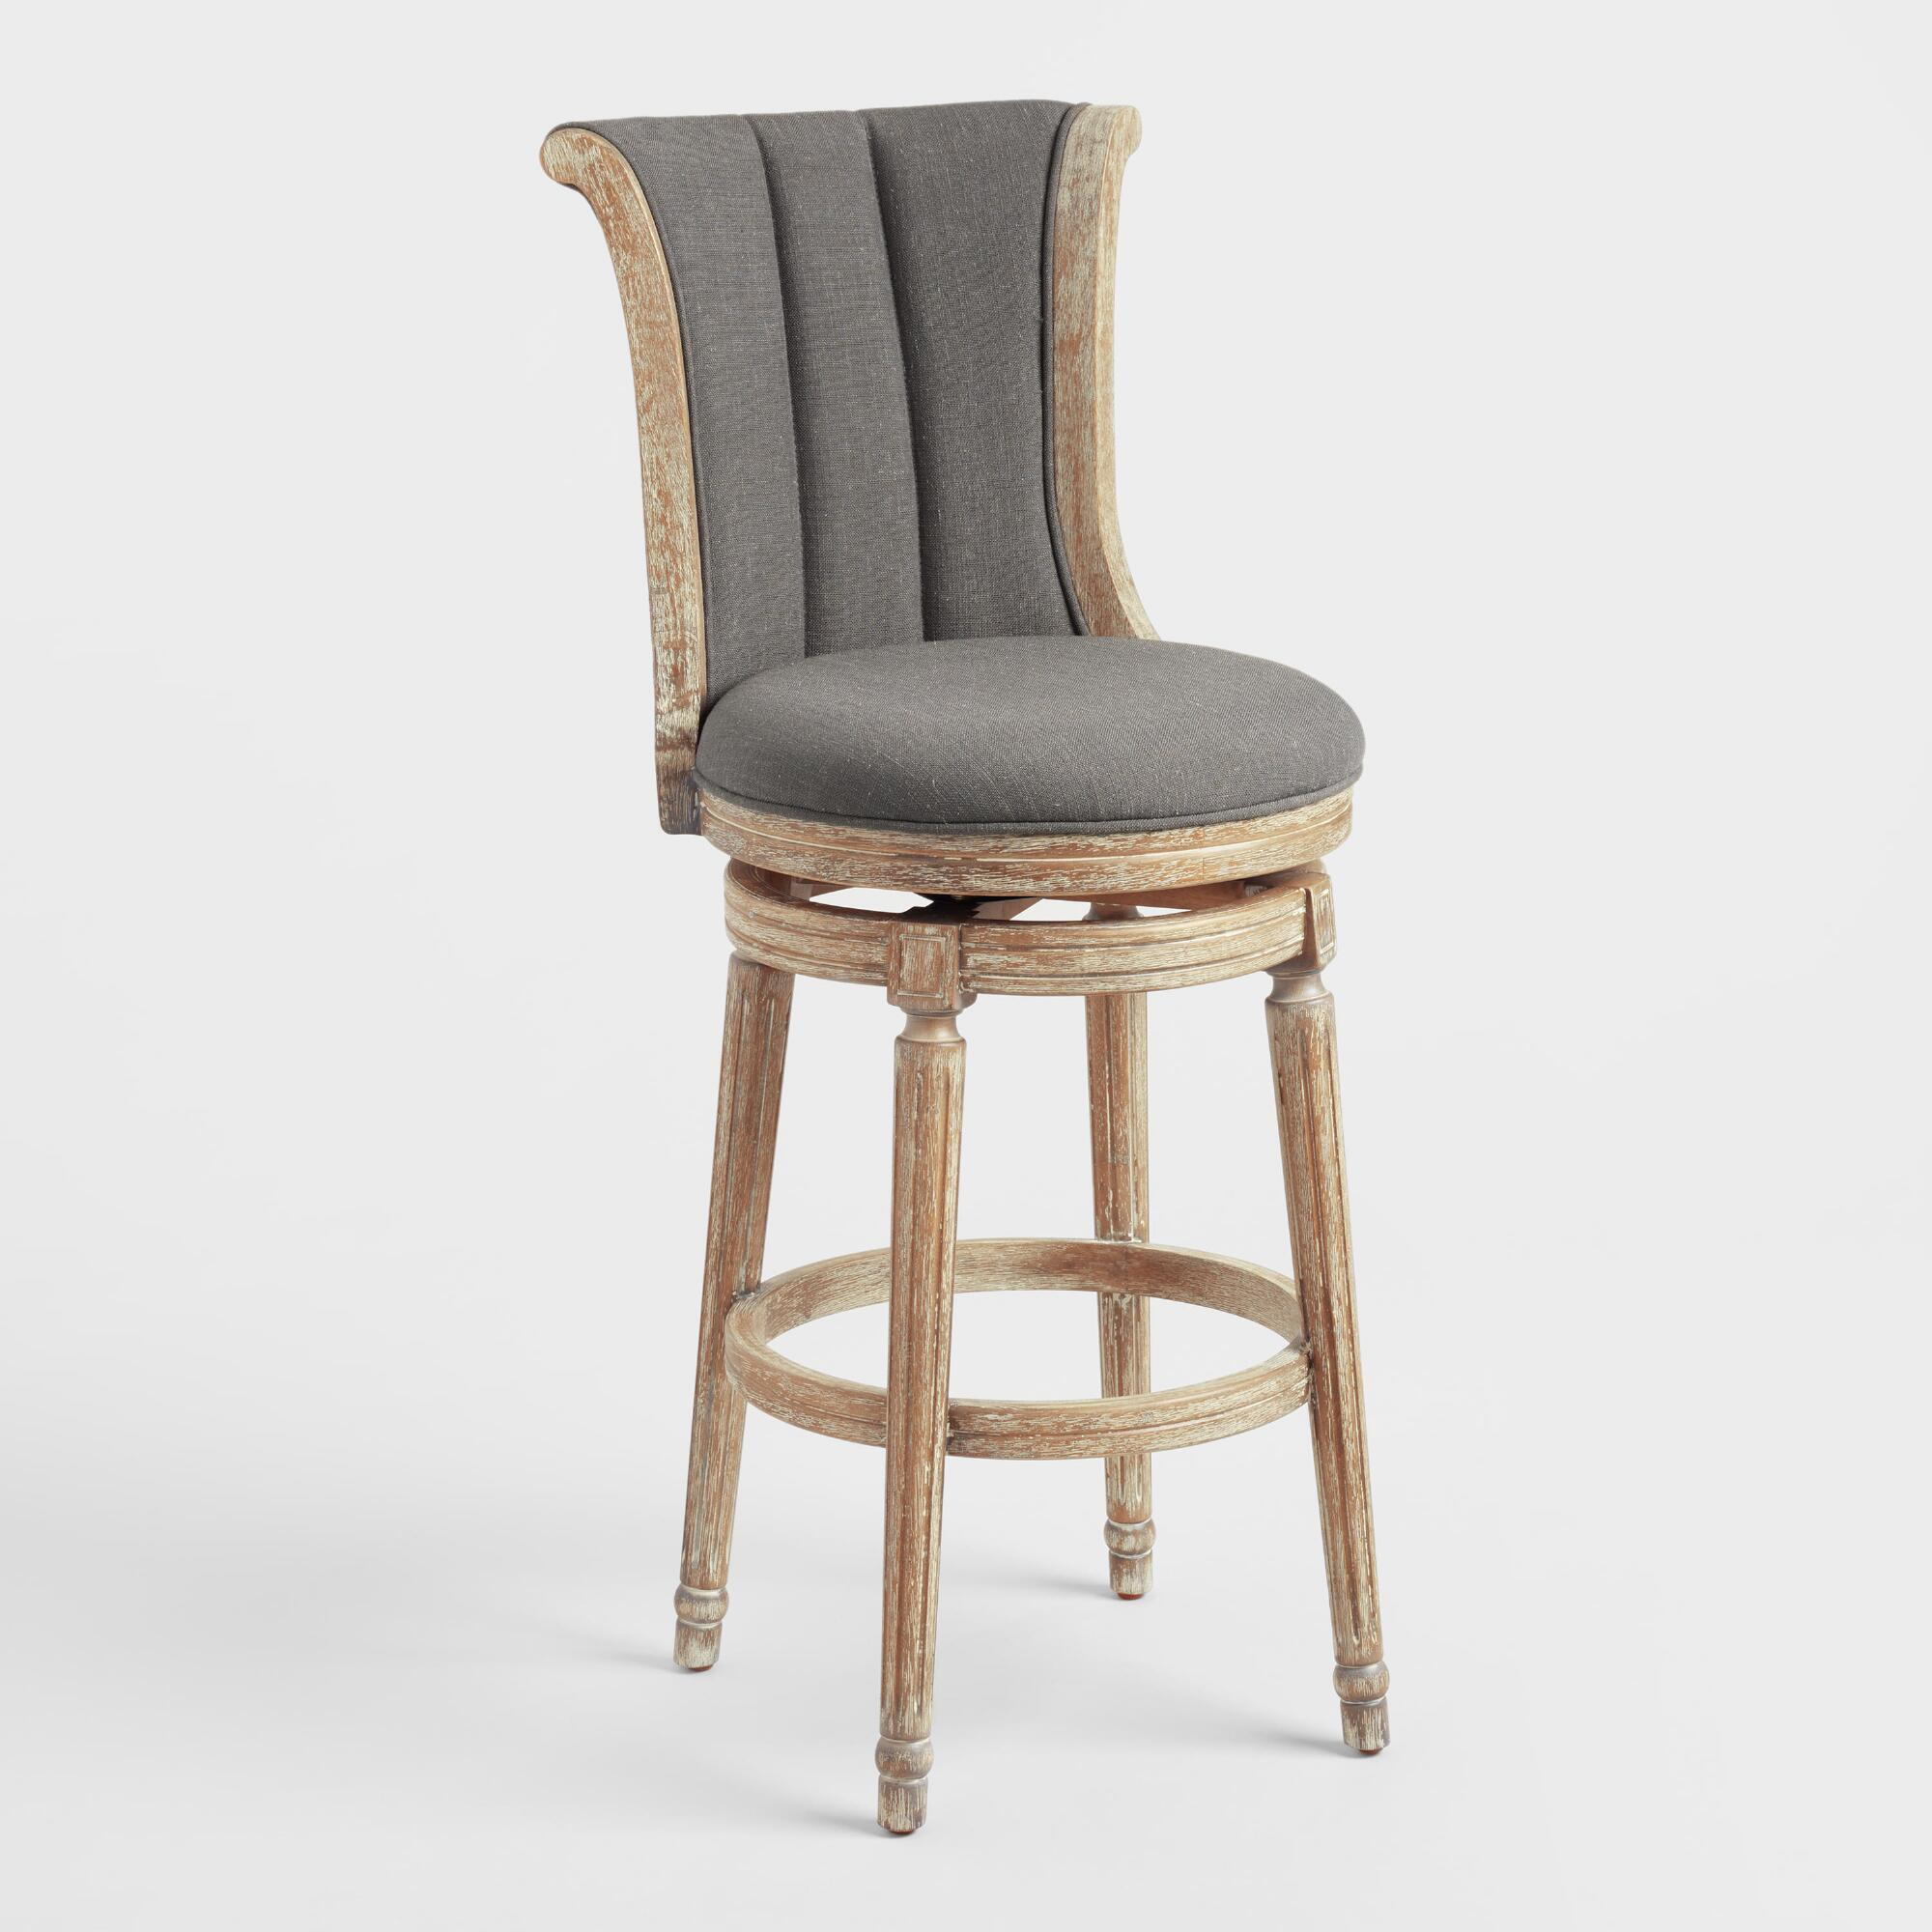 Sku 10014751 Charcoal Linen Channel Back Swivel Barstool Gray By World Market From Cost